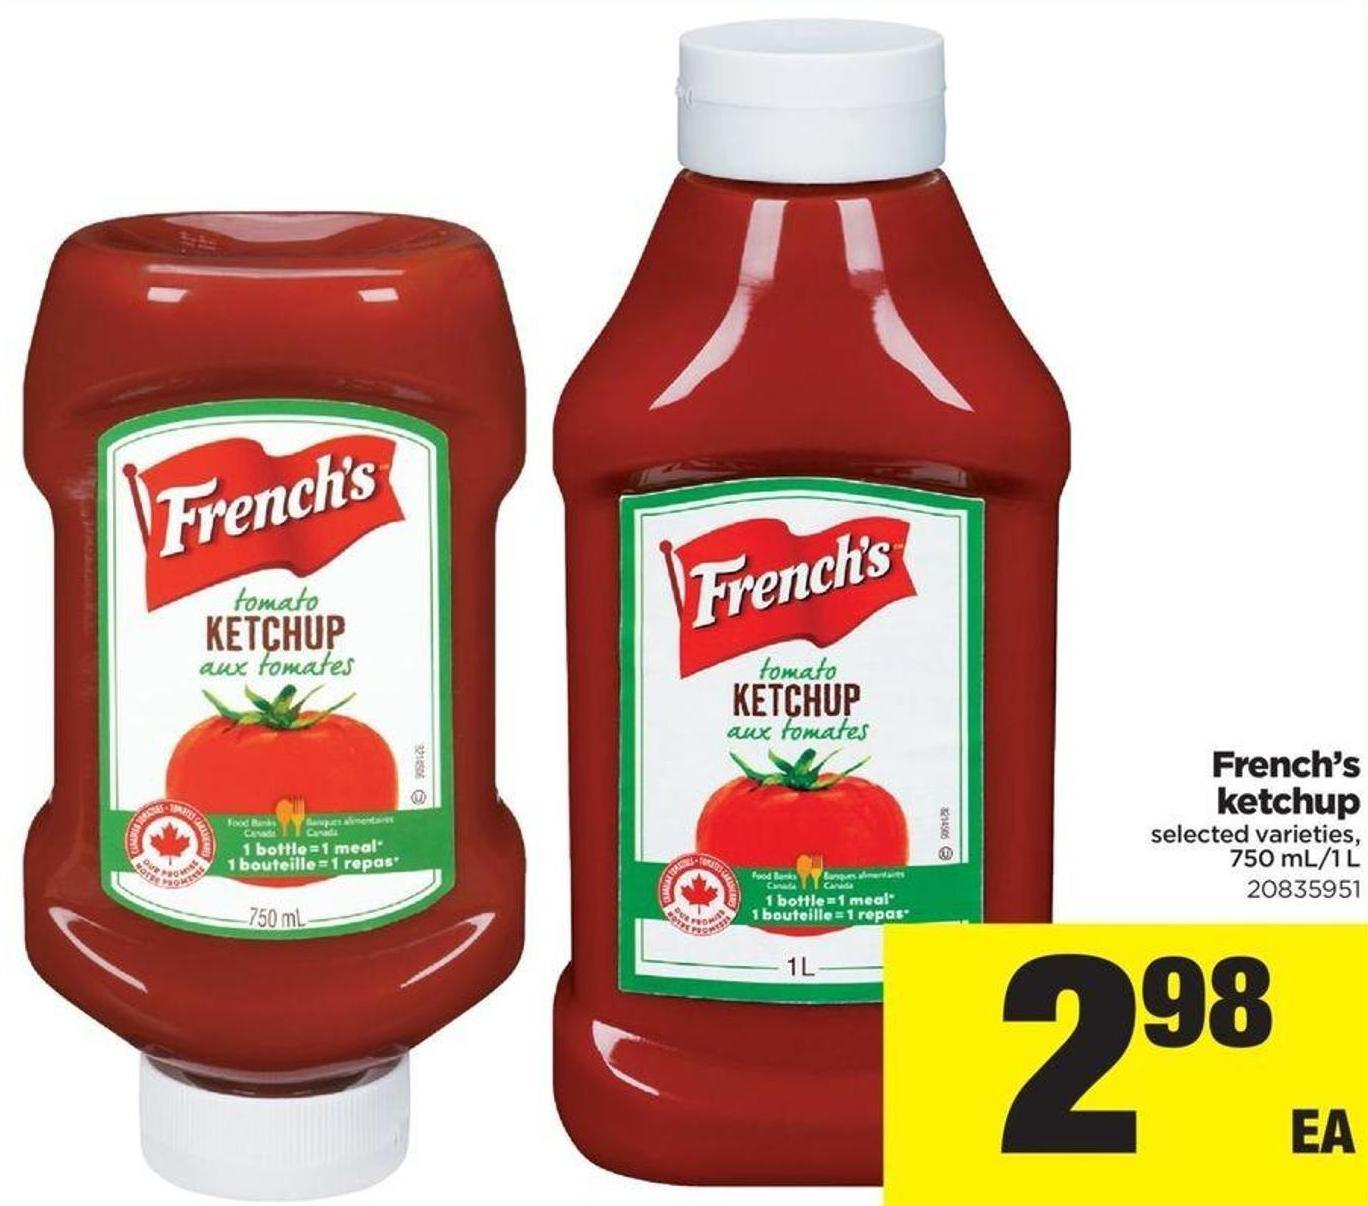 French's Ketchup - 750 Ml/1 L